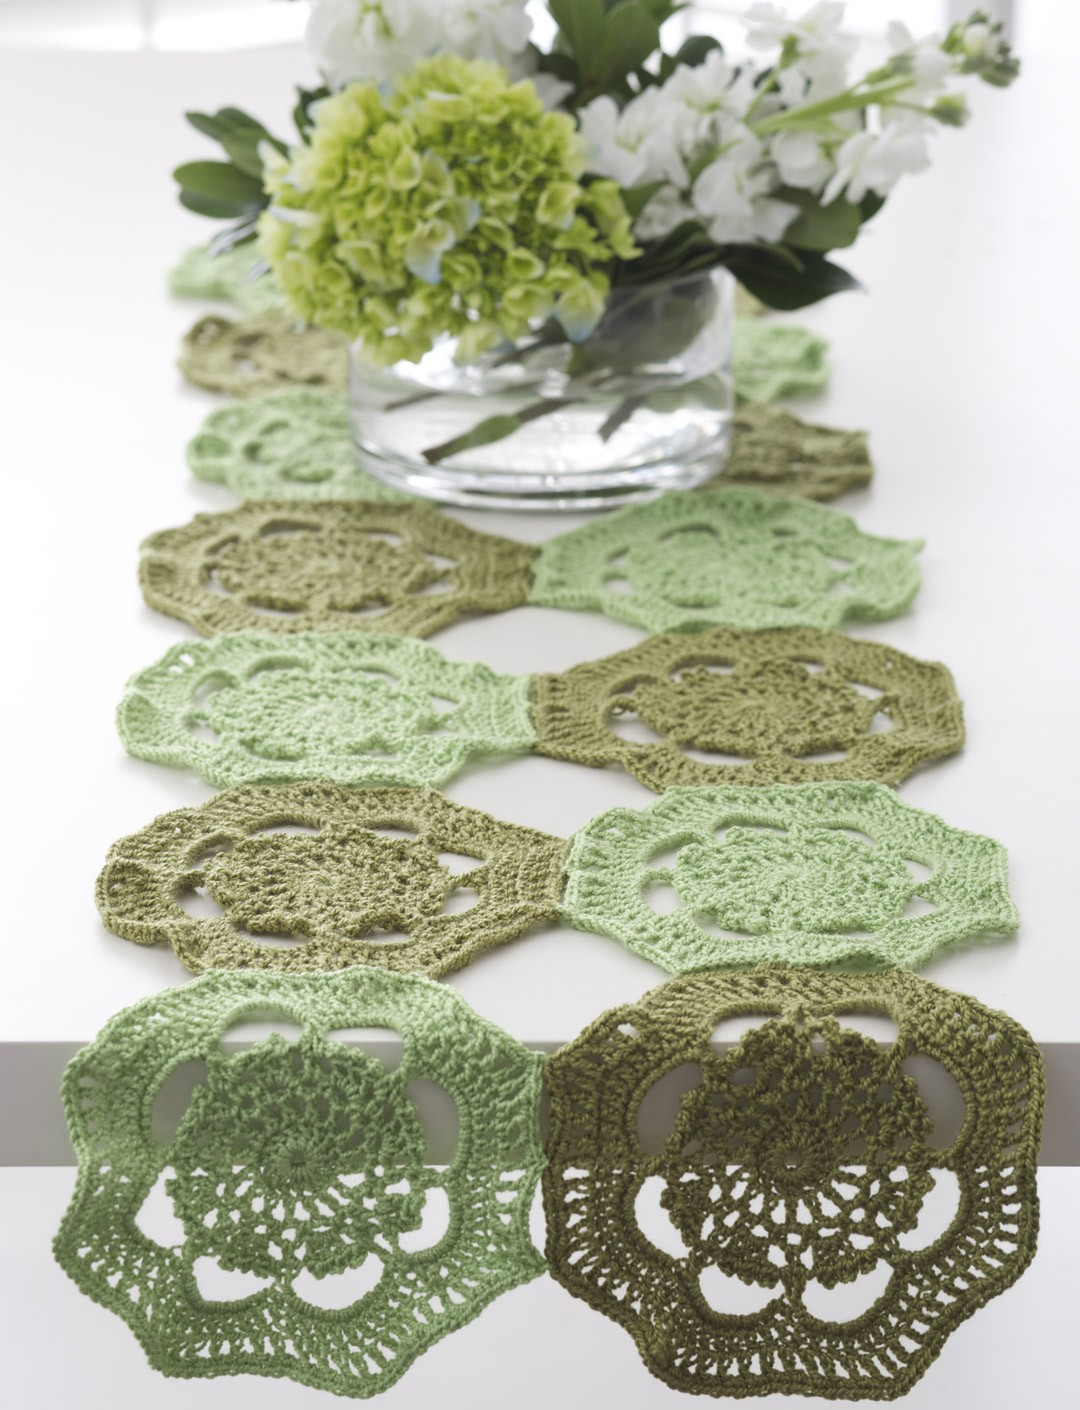 Free Crochet Patterns Using Size 3 Thread : Bernat Doily - 3 Ways, Crochet Pattern Yarnspirations